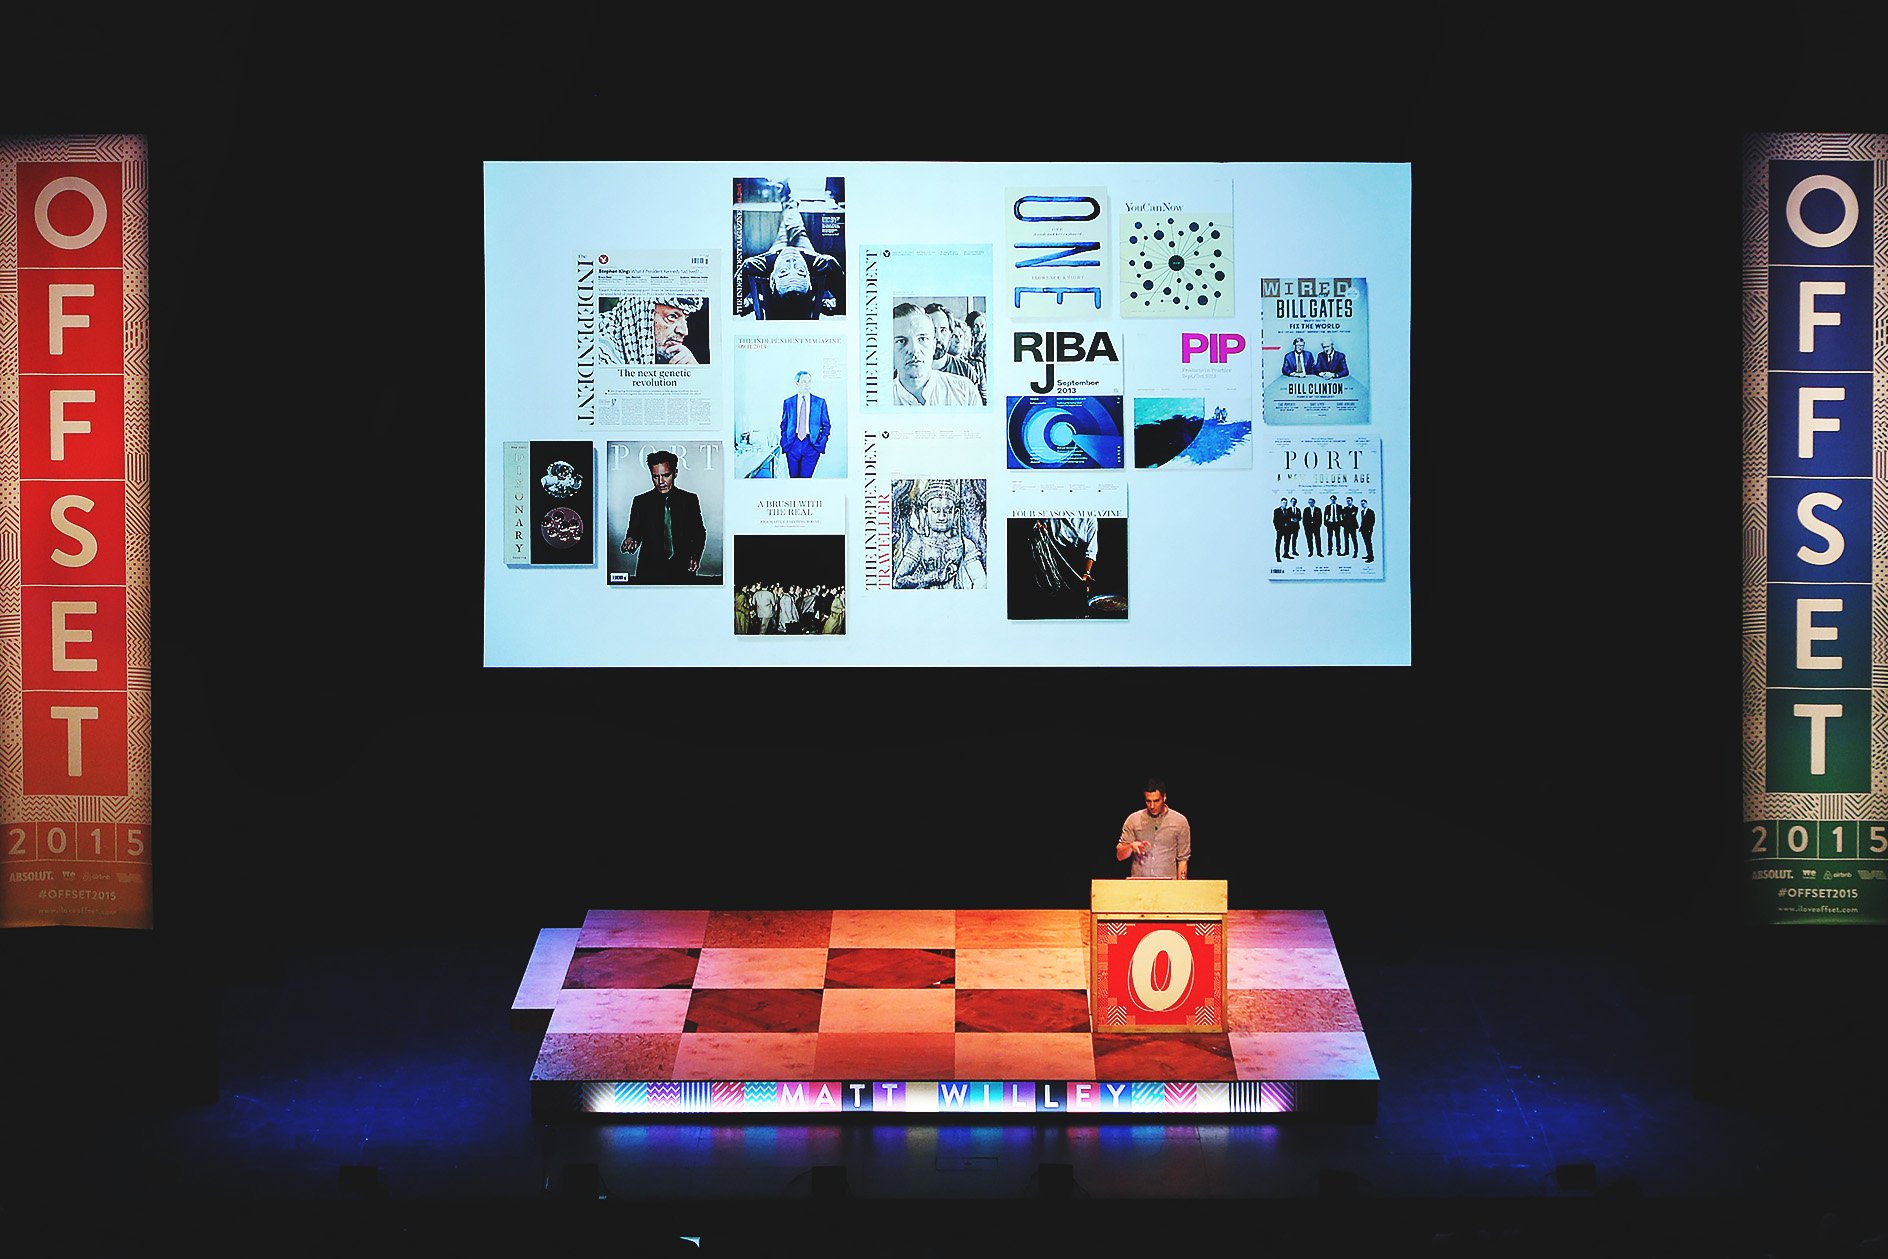 Matt Willey at OFFSET 2015 – Work samples